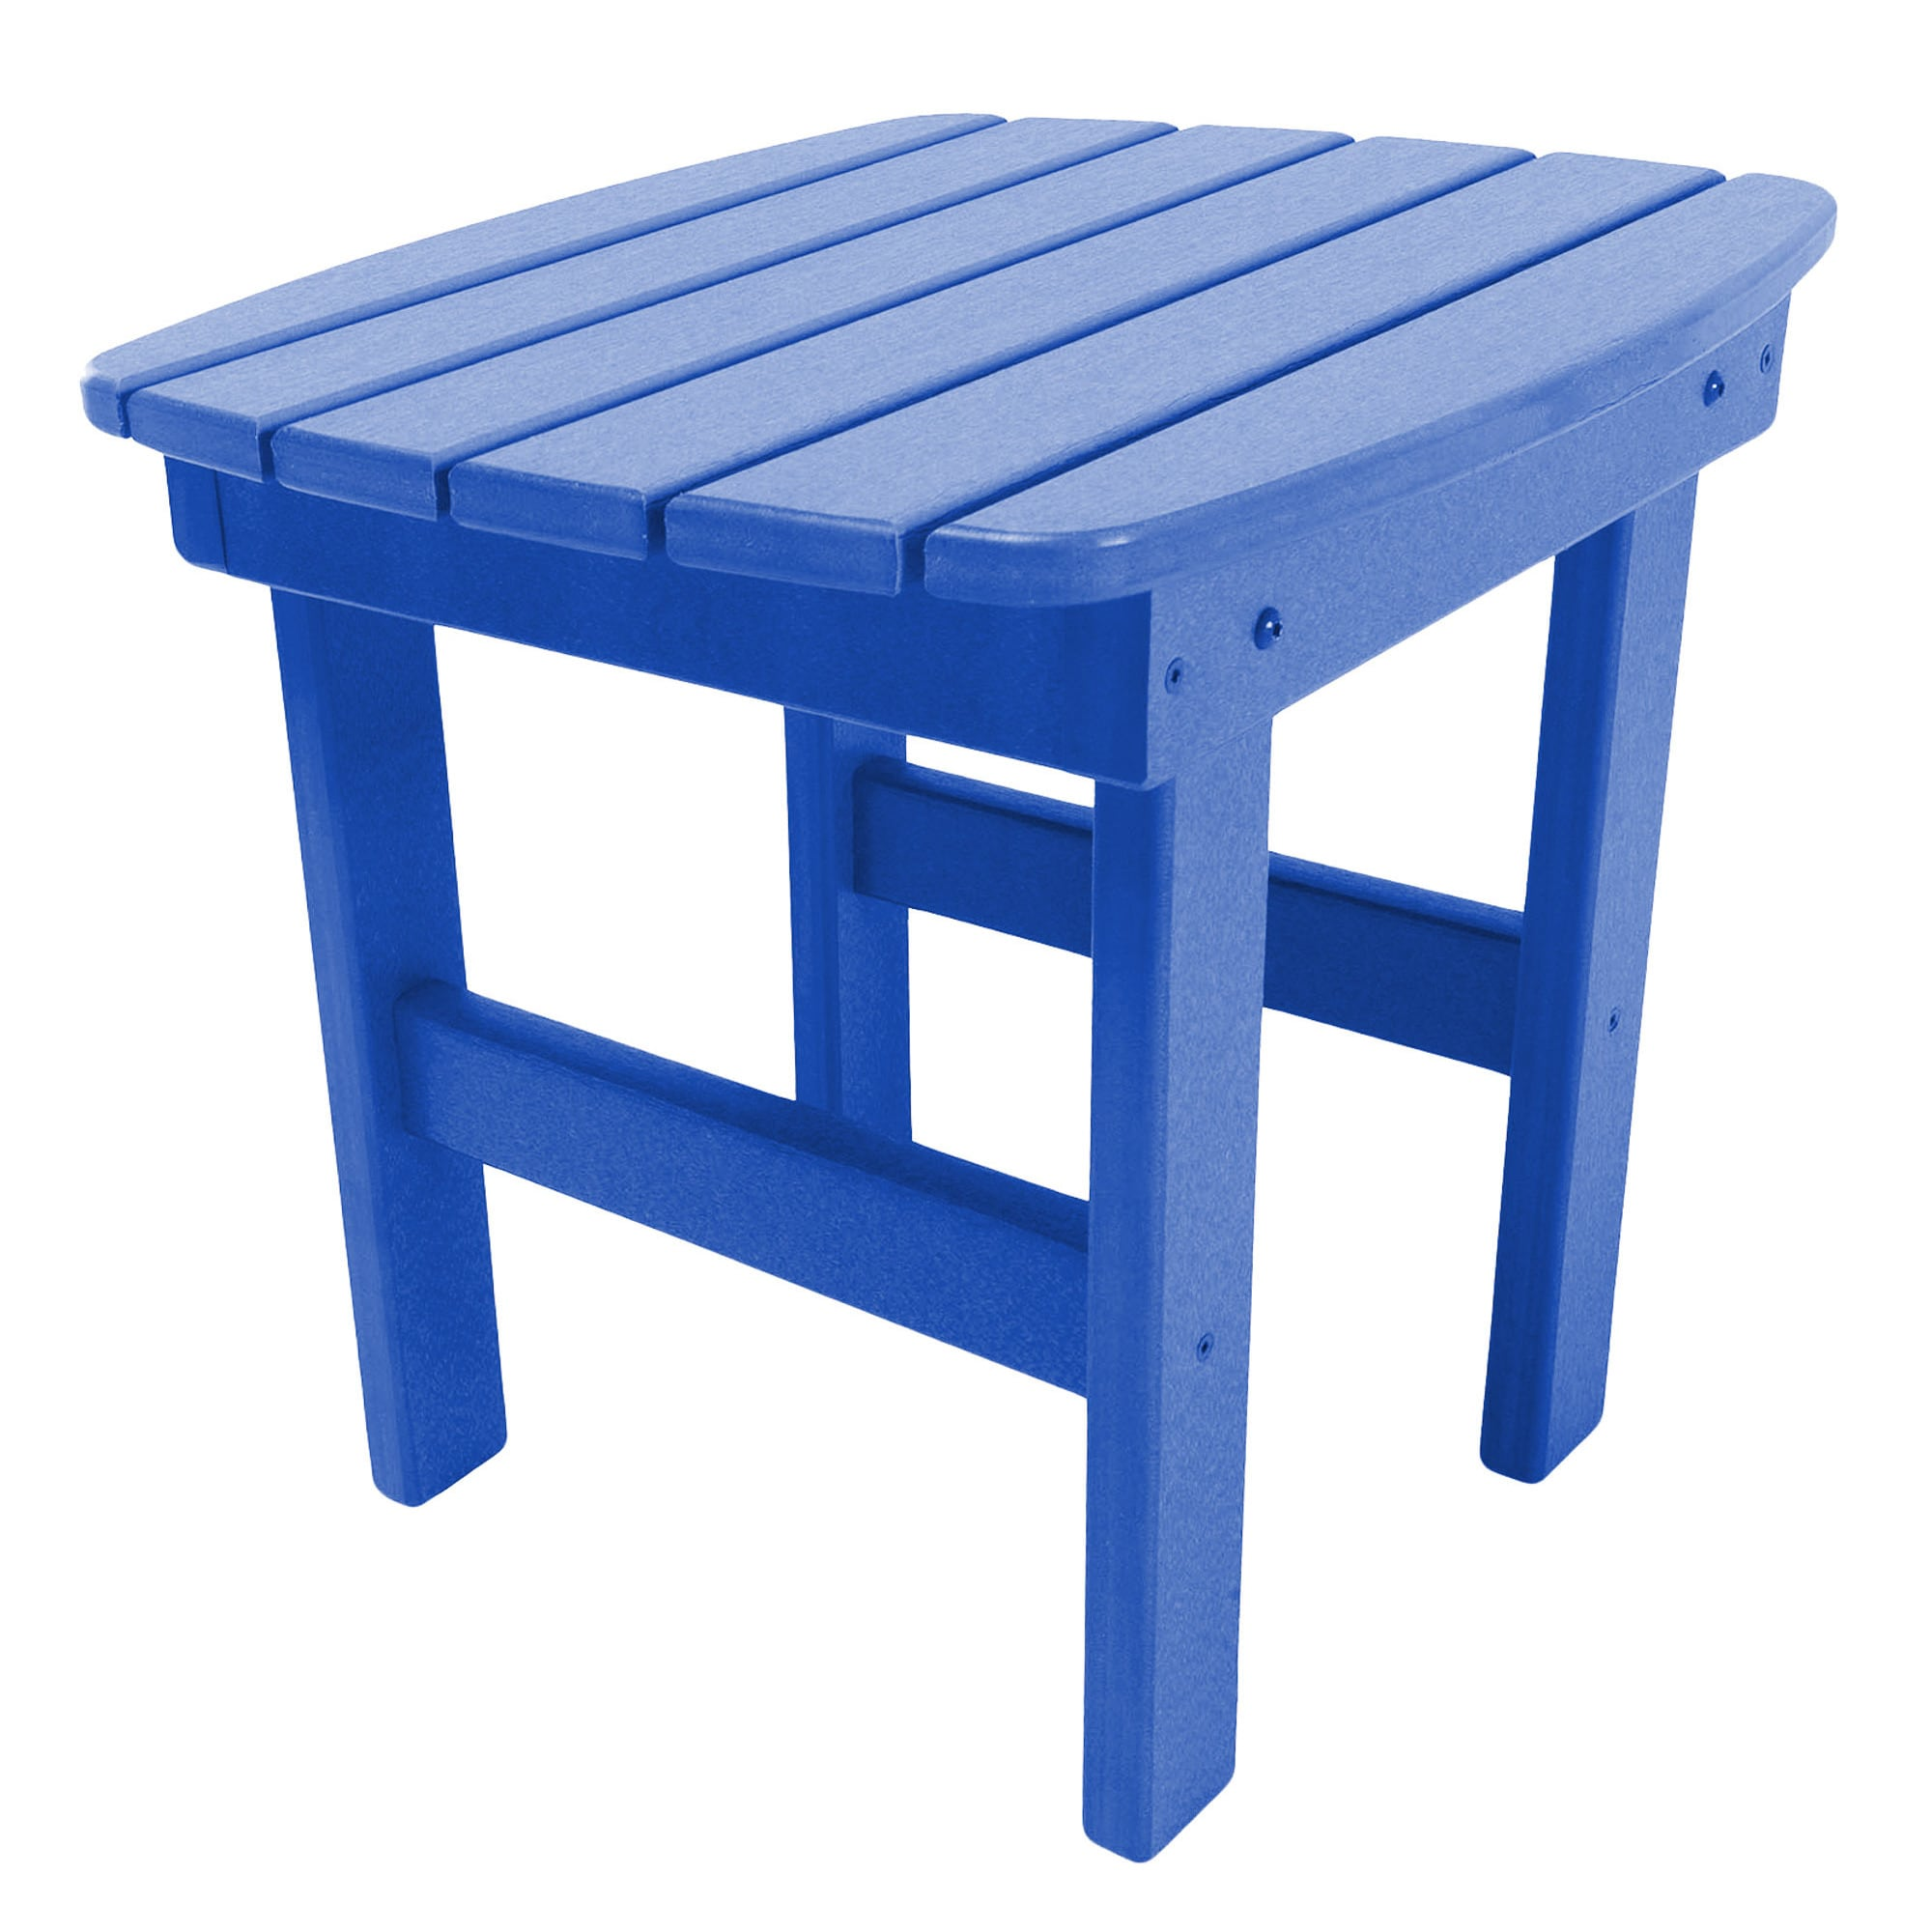 Adirondack Side Table in Blue (blue), Patio Furniture (Wood)